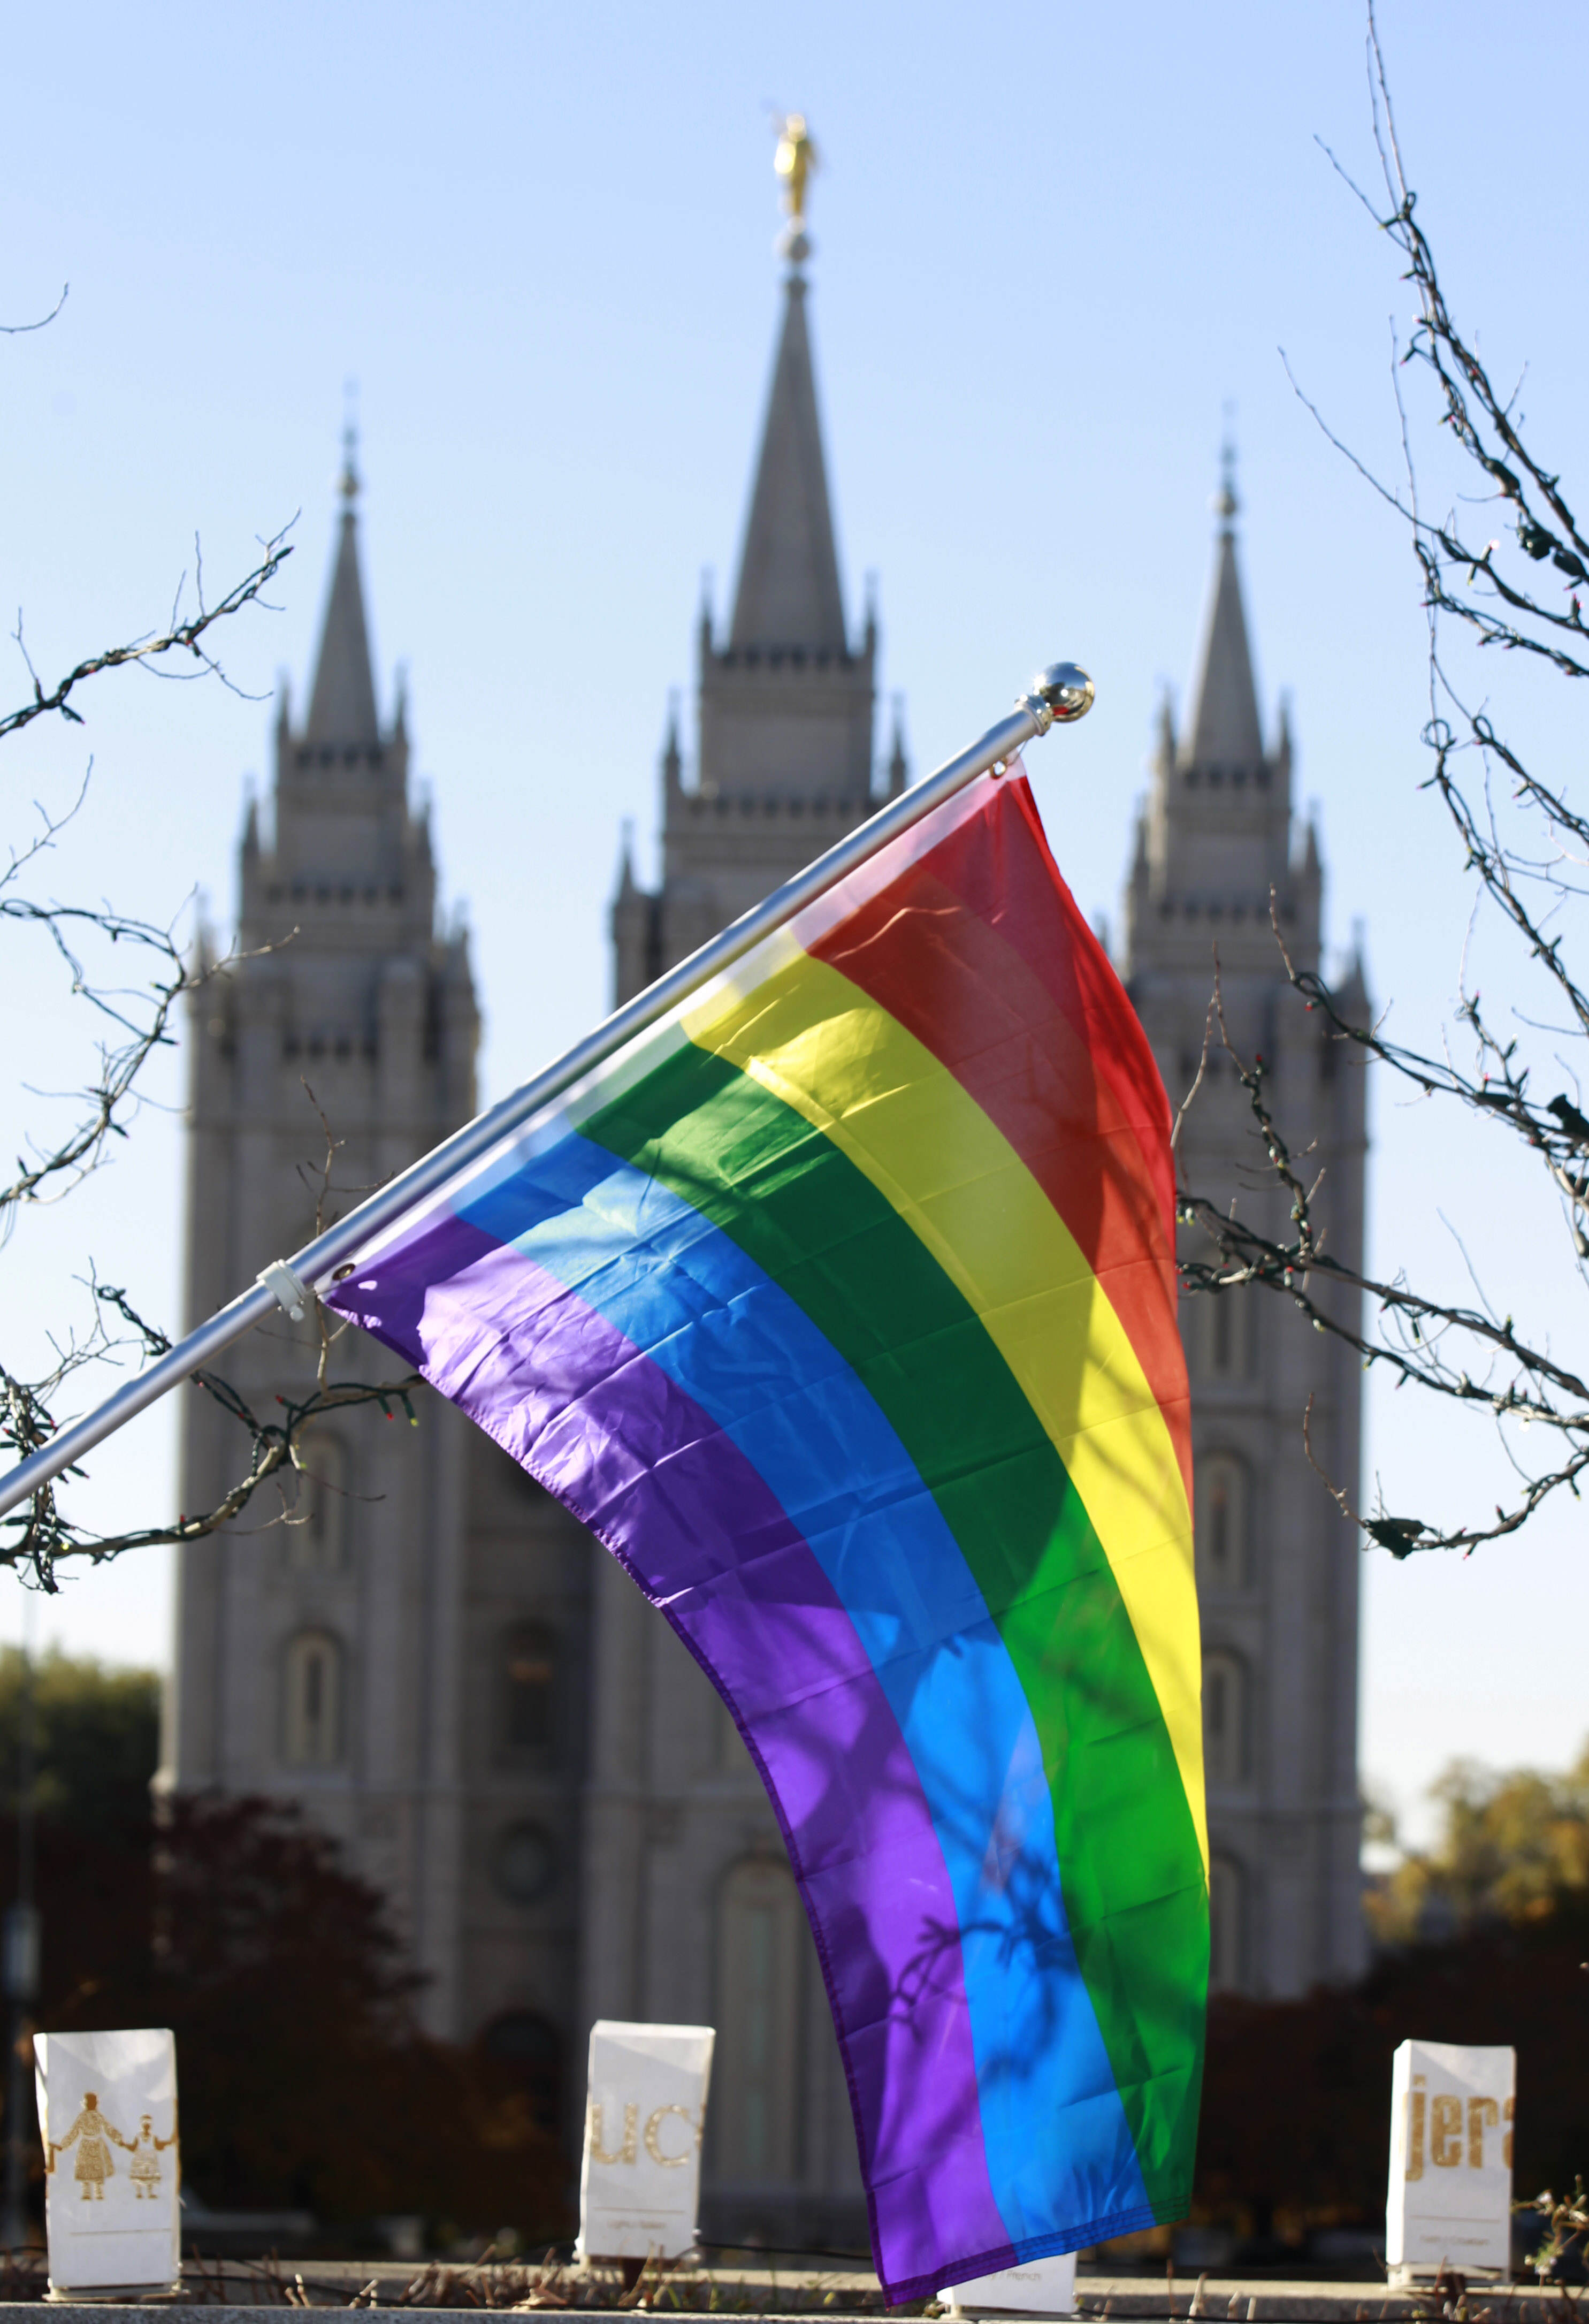 SALT LAKE CITY, UT - NOVEMBER14: A pride flag flies in front of the Historic